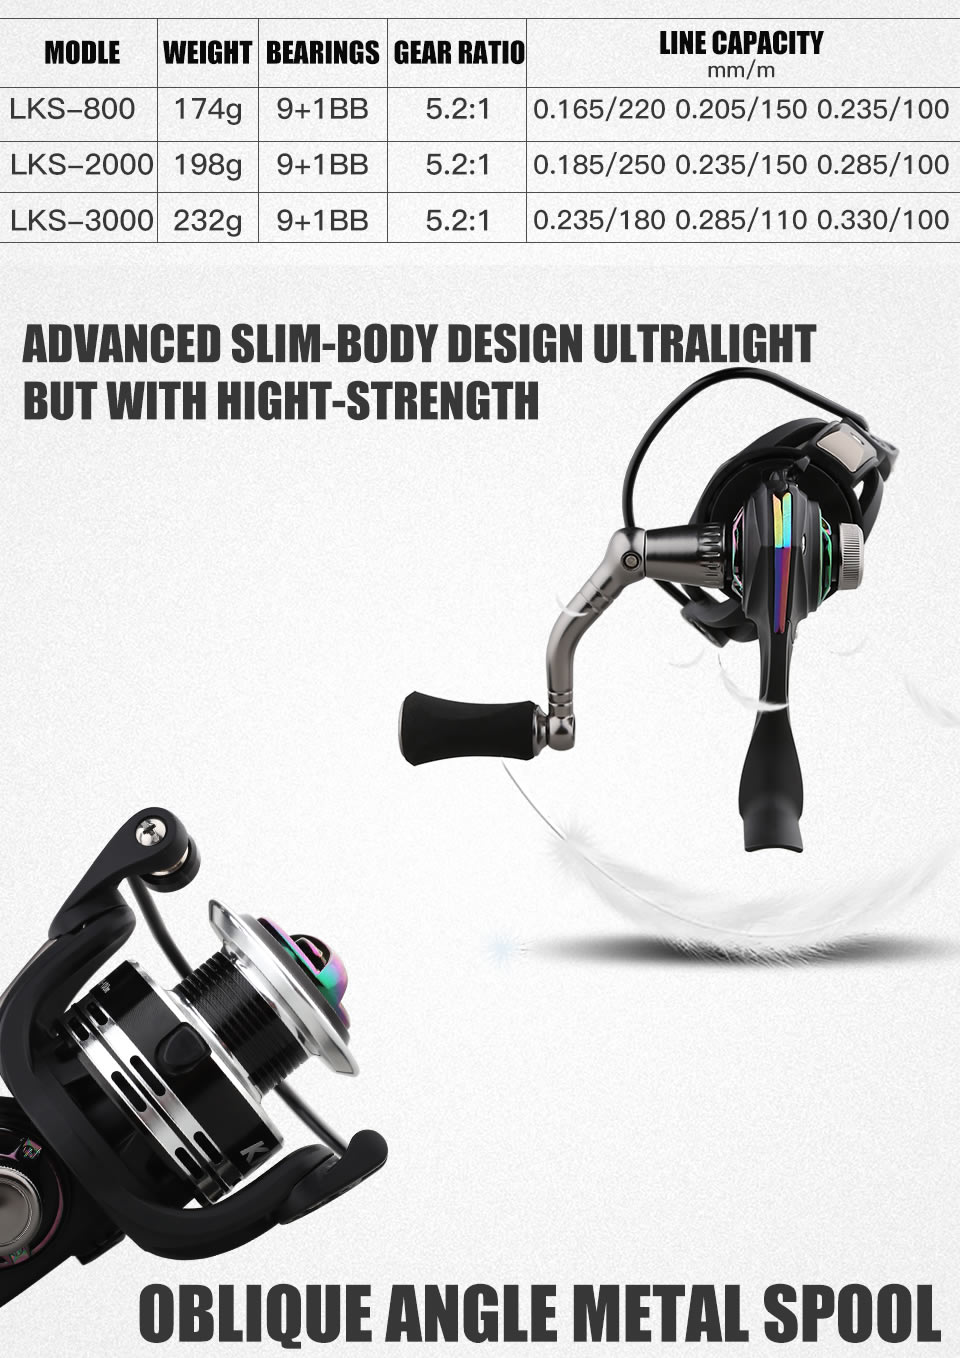 Kingdom KING II Spinning Rods Combo Casting Fishing Rod Reel Set 2 pc top section and 2 pc Power Lure Set Fishing Rod (18)